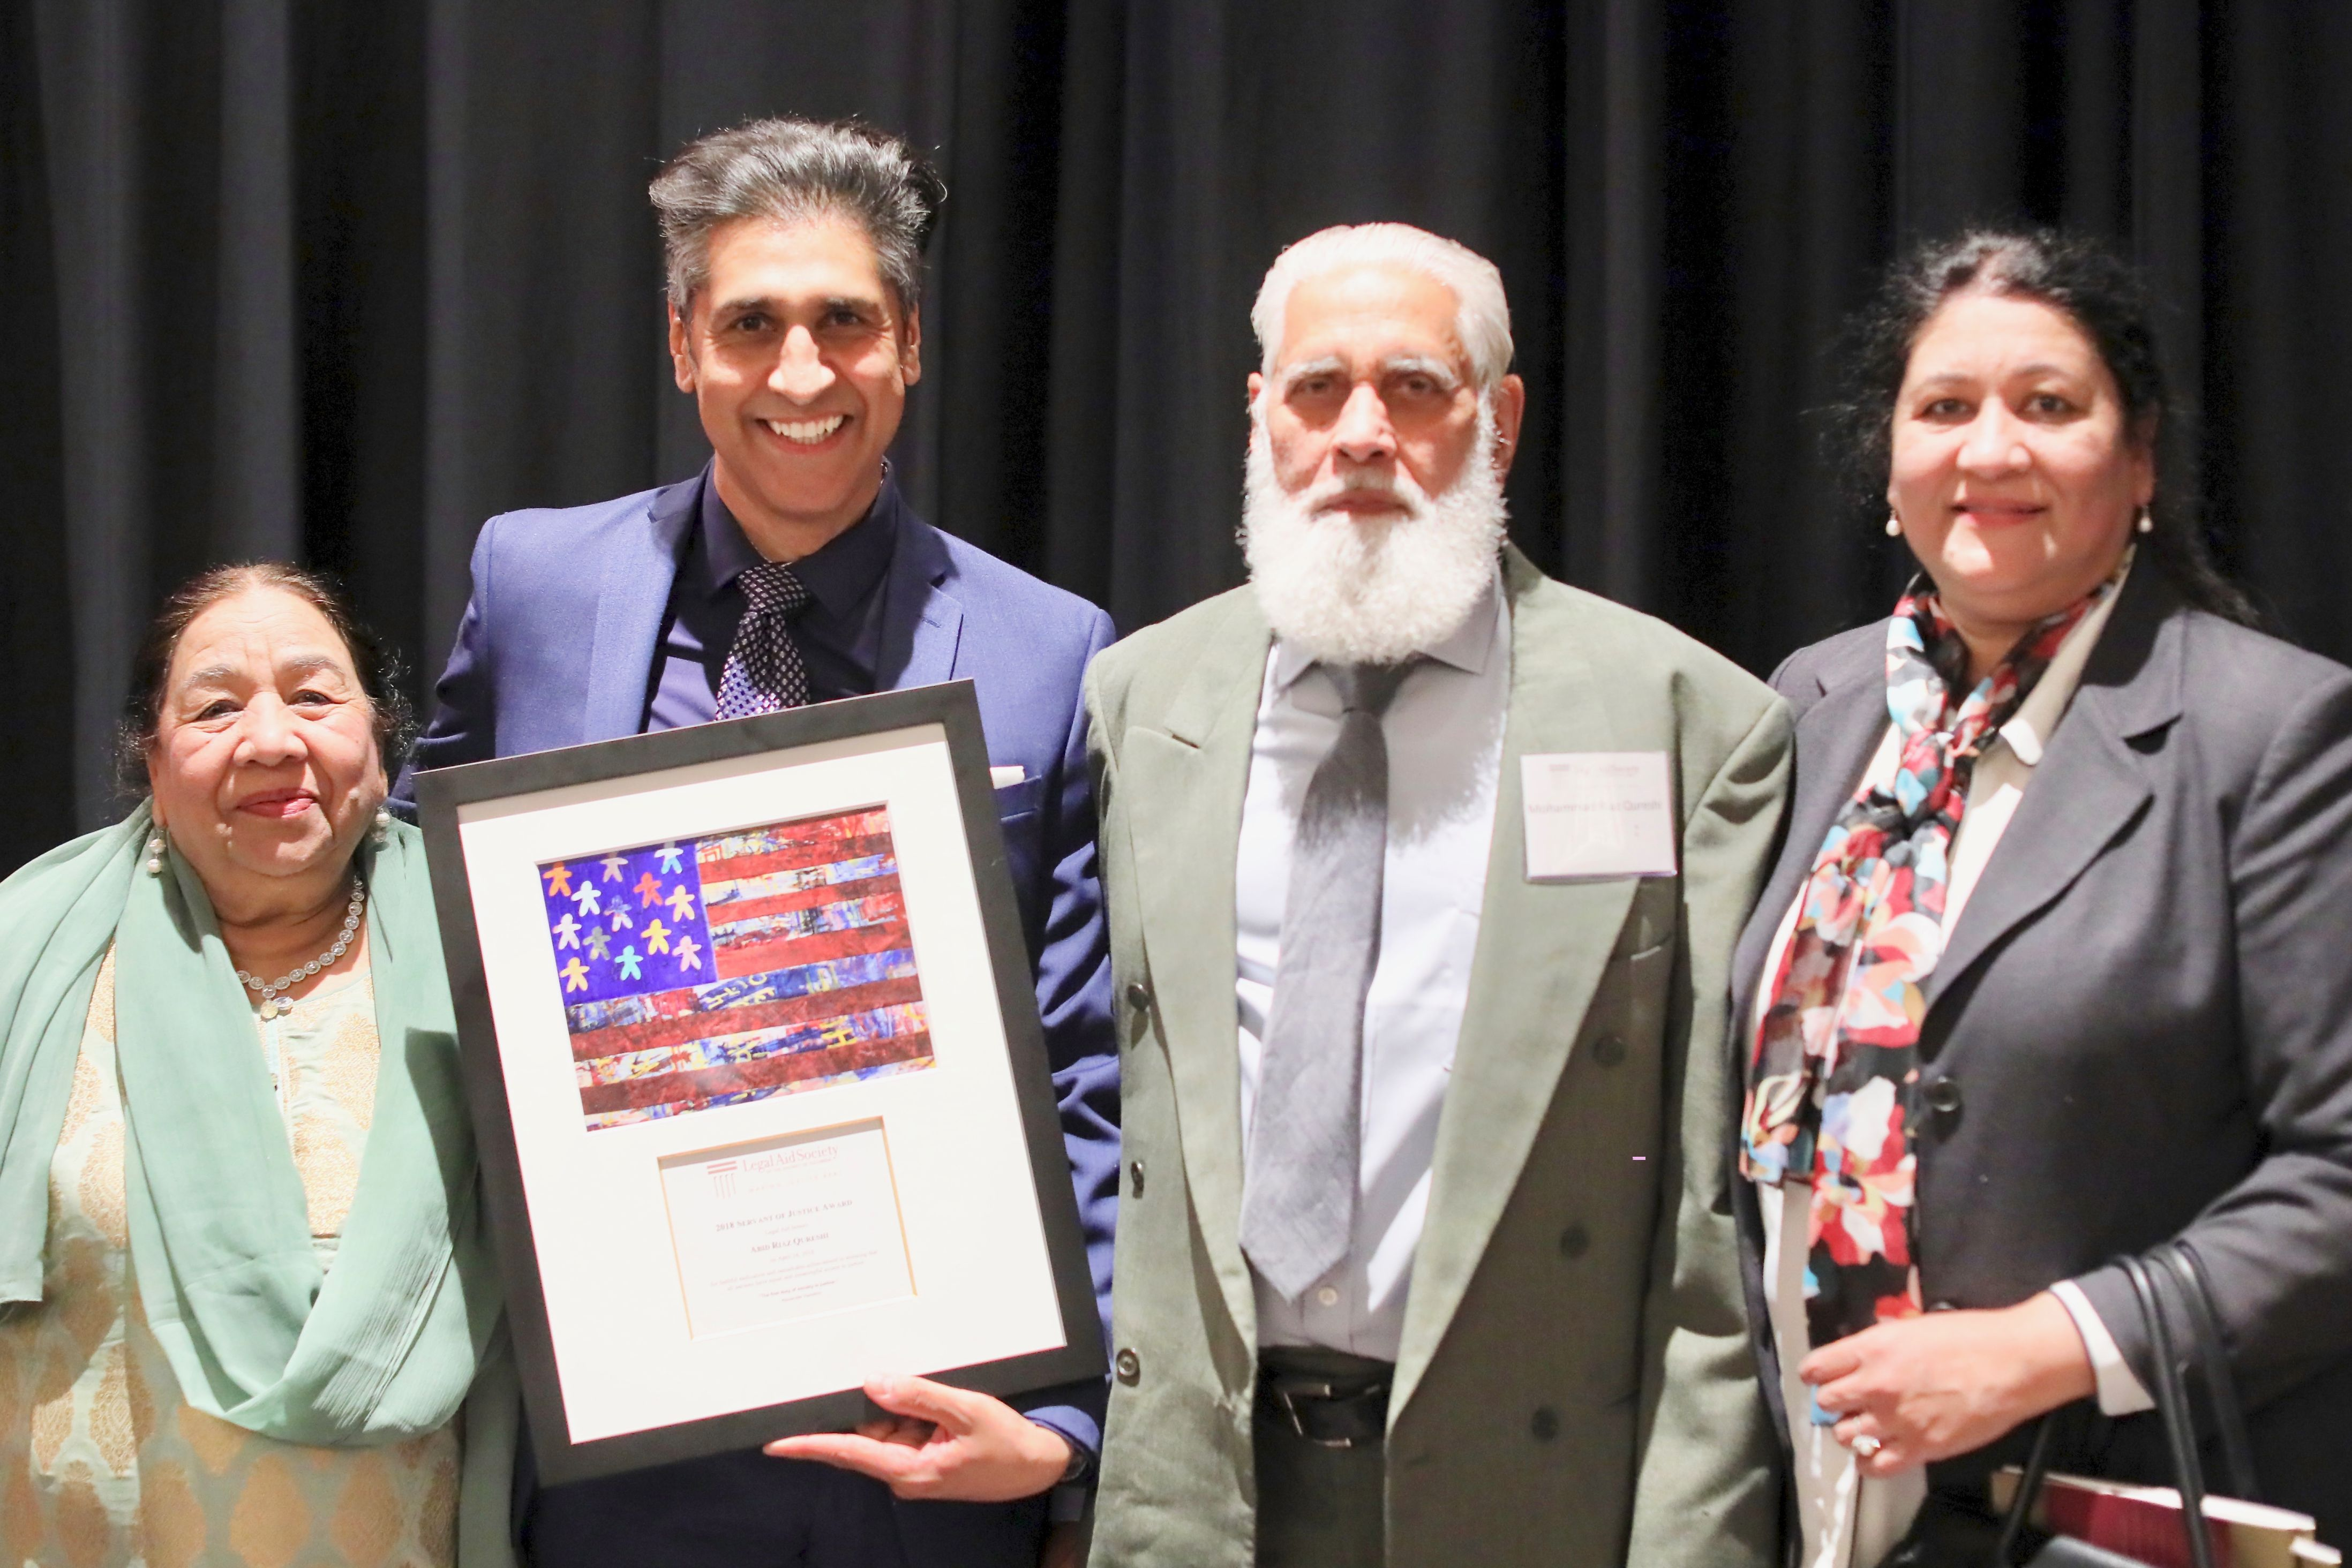 Servant of Justice Honoree Abid Riaz Qureshi with his parents and sister